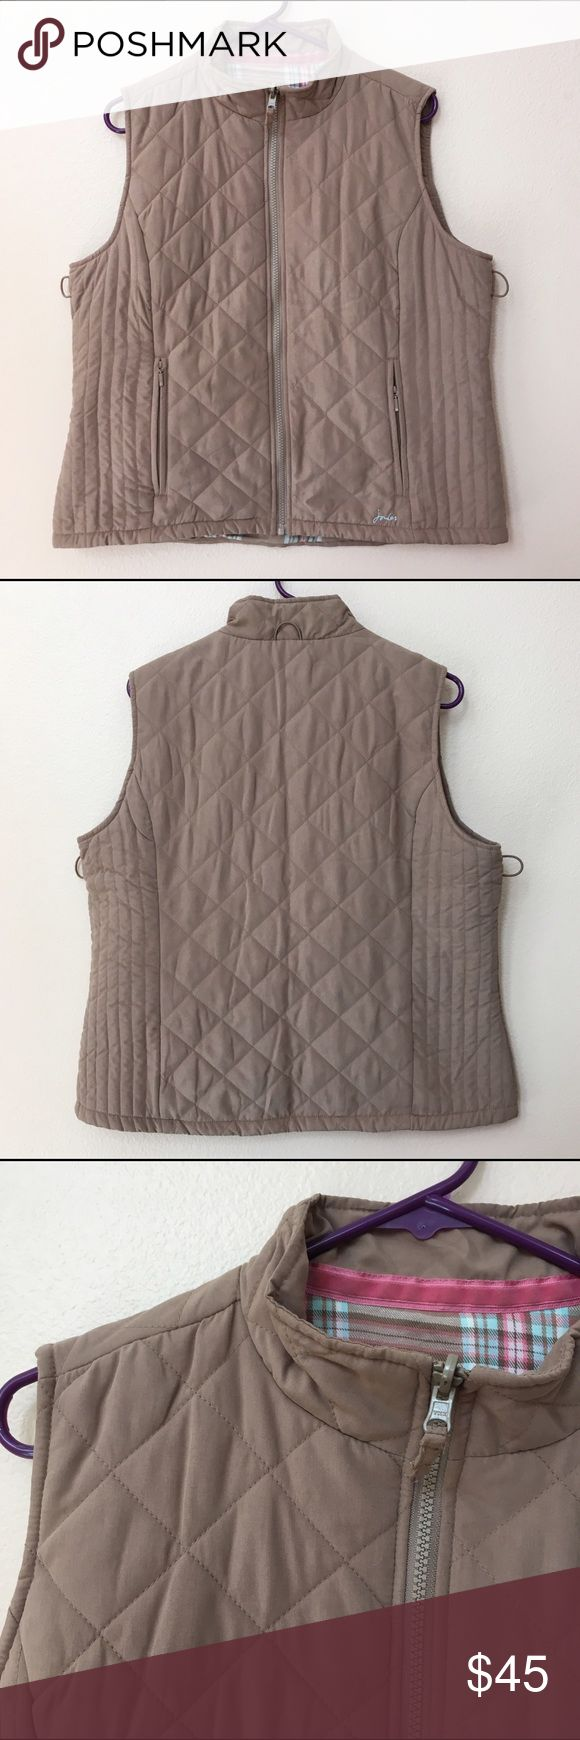 "Light brown Joules clothing quilted vest Light brown / tan quilted vest from Joule Clothing. Purchased in England. Mock neck and fully zips up the front. Two hip pockets. Three elastic loops (1 on neck, 2 on sides). Logo embroidered on the bottom. Not quite sure the material, the exterior is soft and lightweight. Interior is likely cotton. Interior is lined with plaid fabric in pink, blue, and tan. US Size 12. Measures 26.75"" neck to hem, 22"" in bust, 21.5"" in waist. Excellent condition, no…"